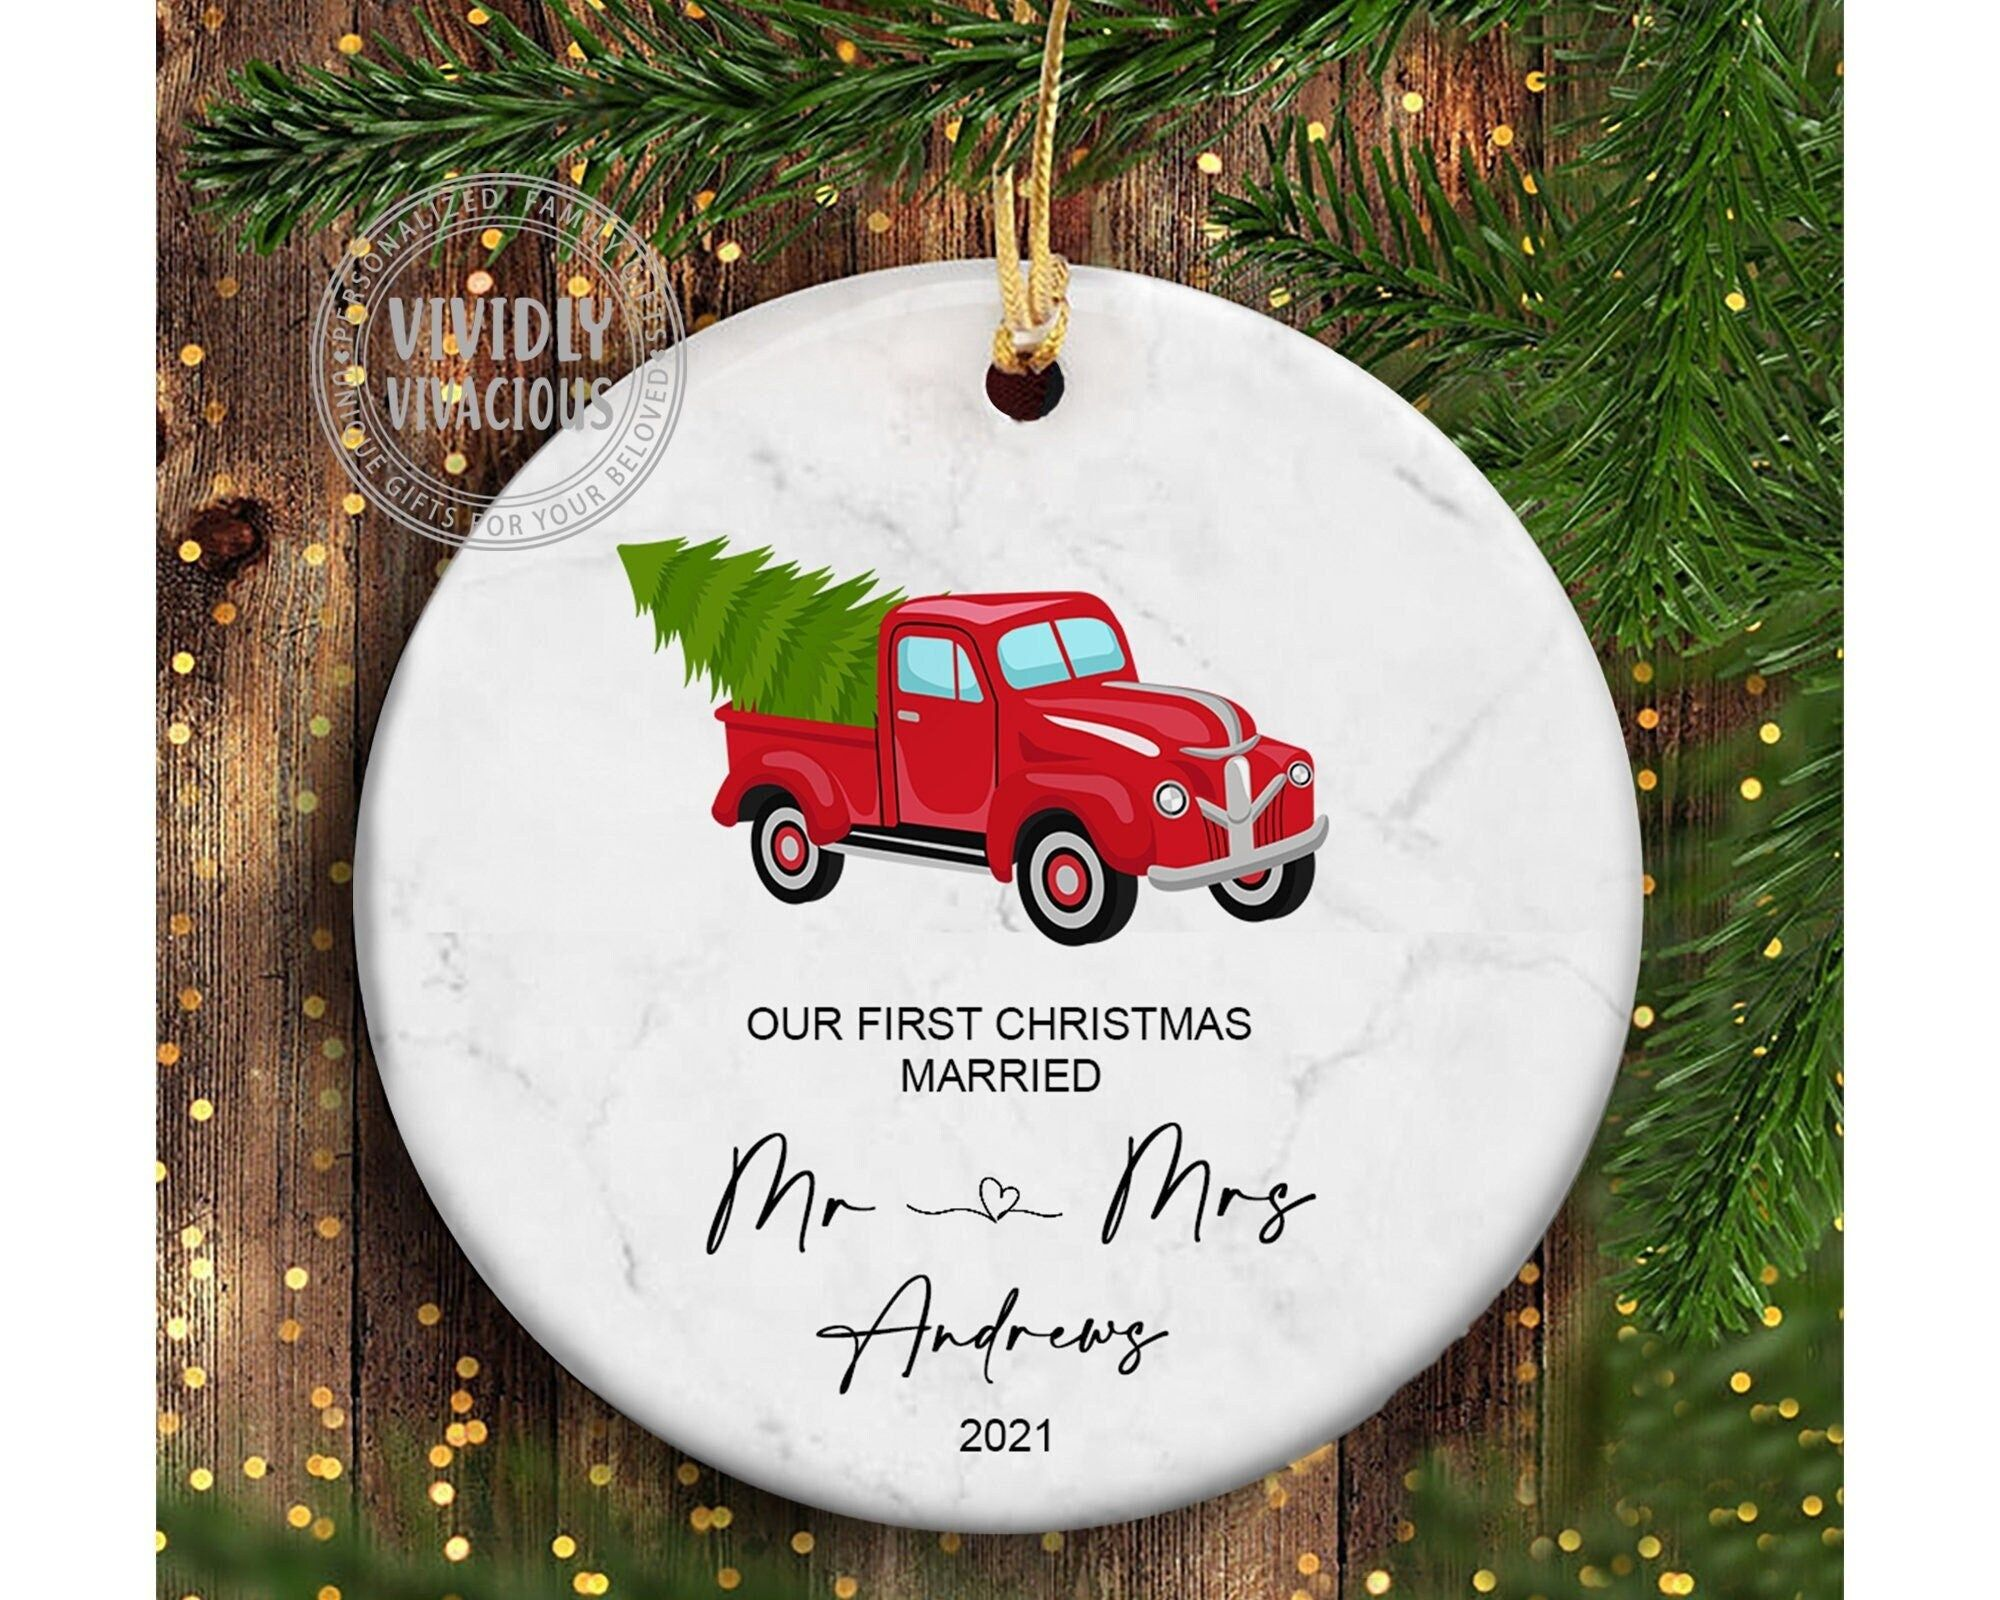 First christmas married ornament 2021